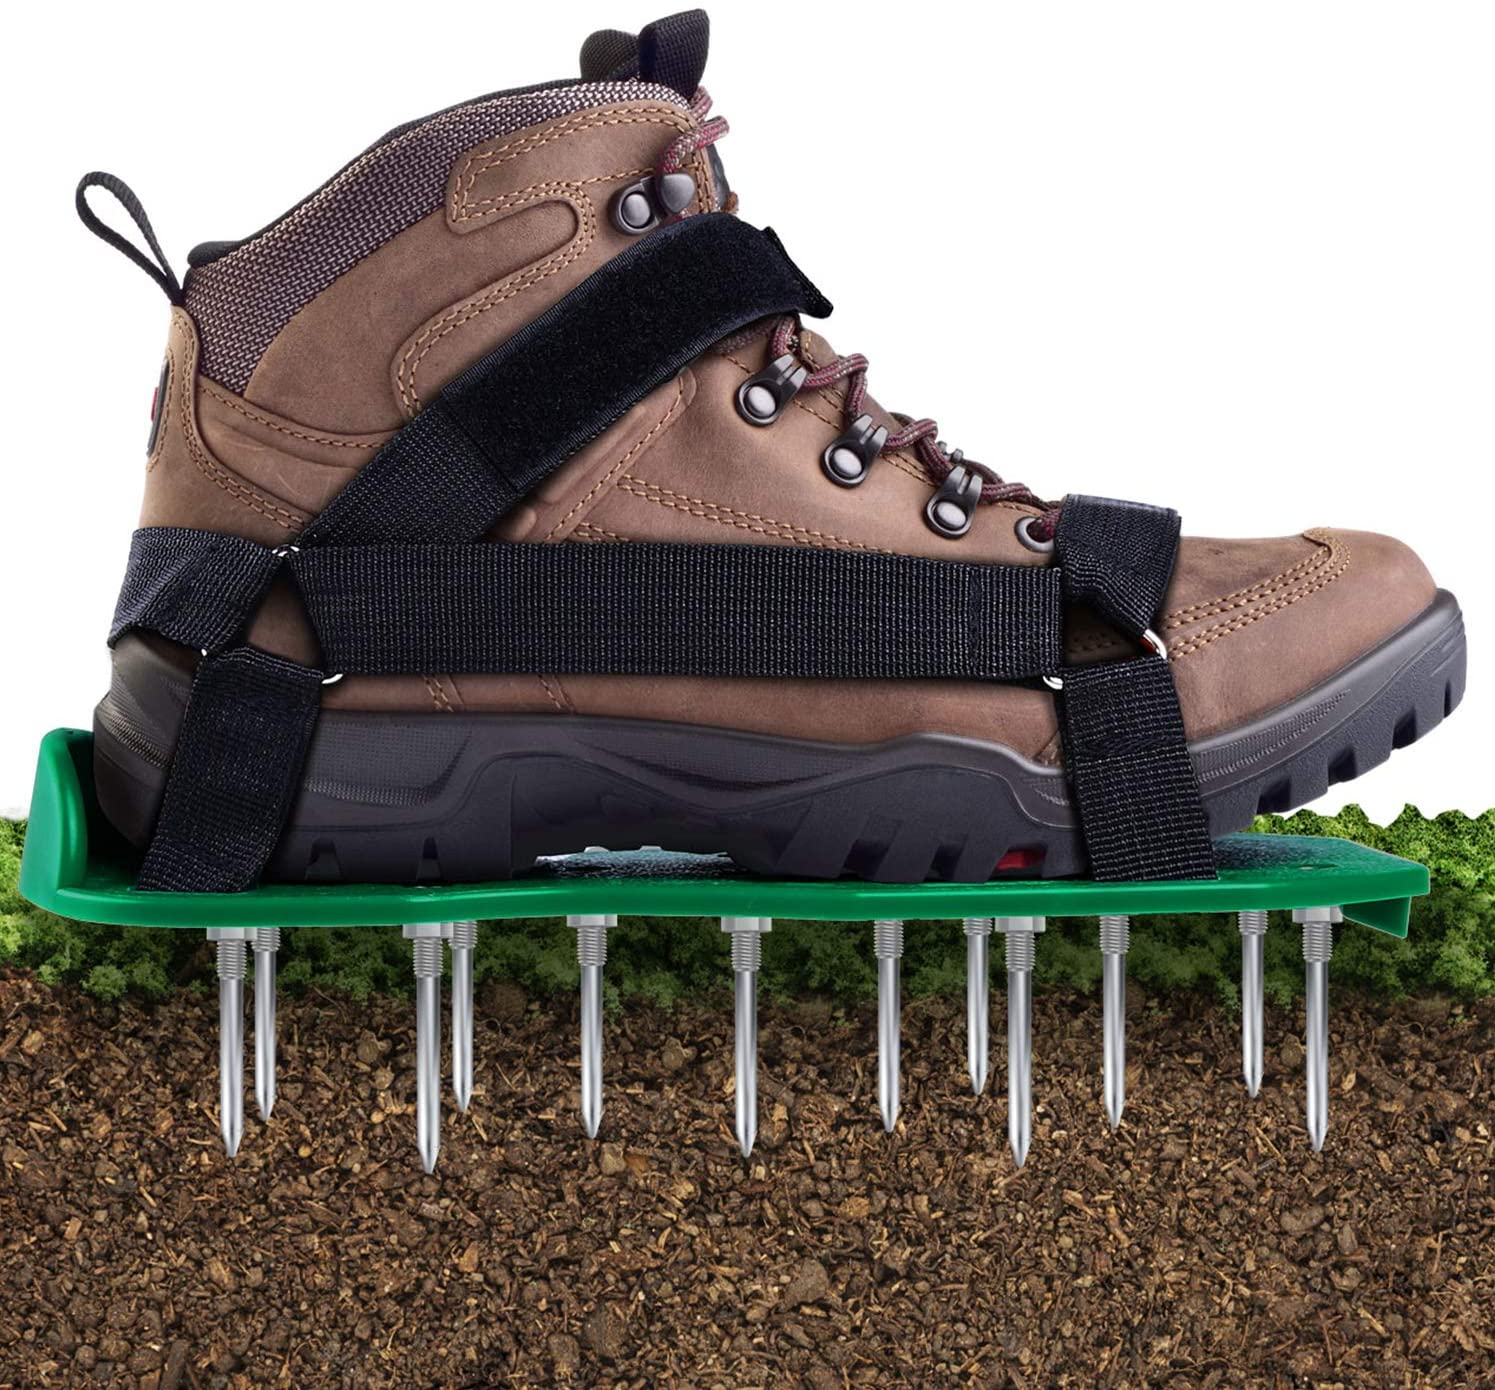 Review of Ohuhu Lawn Aerator Shoes with Hook & Loop Straps